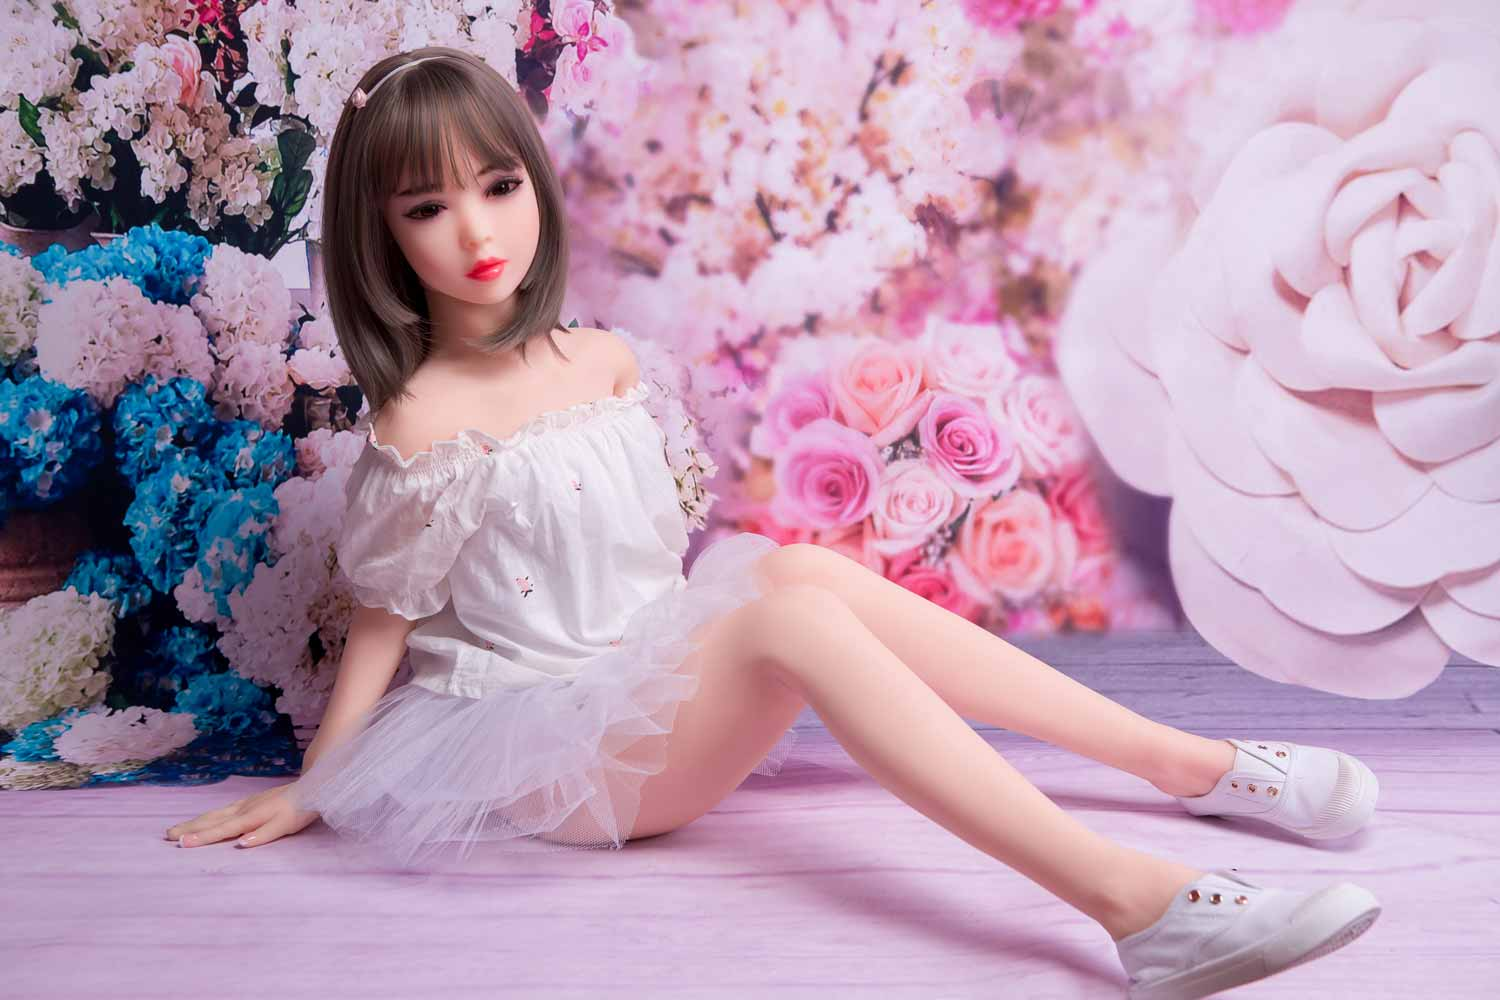 Mini sex doll with both hands on the ground